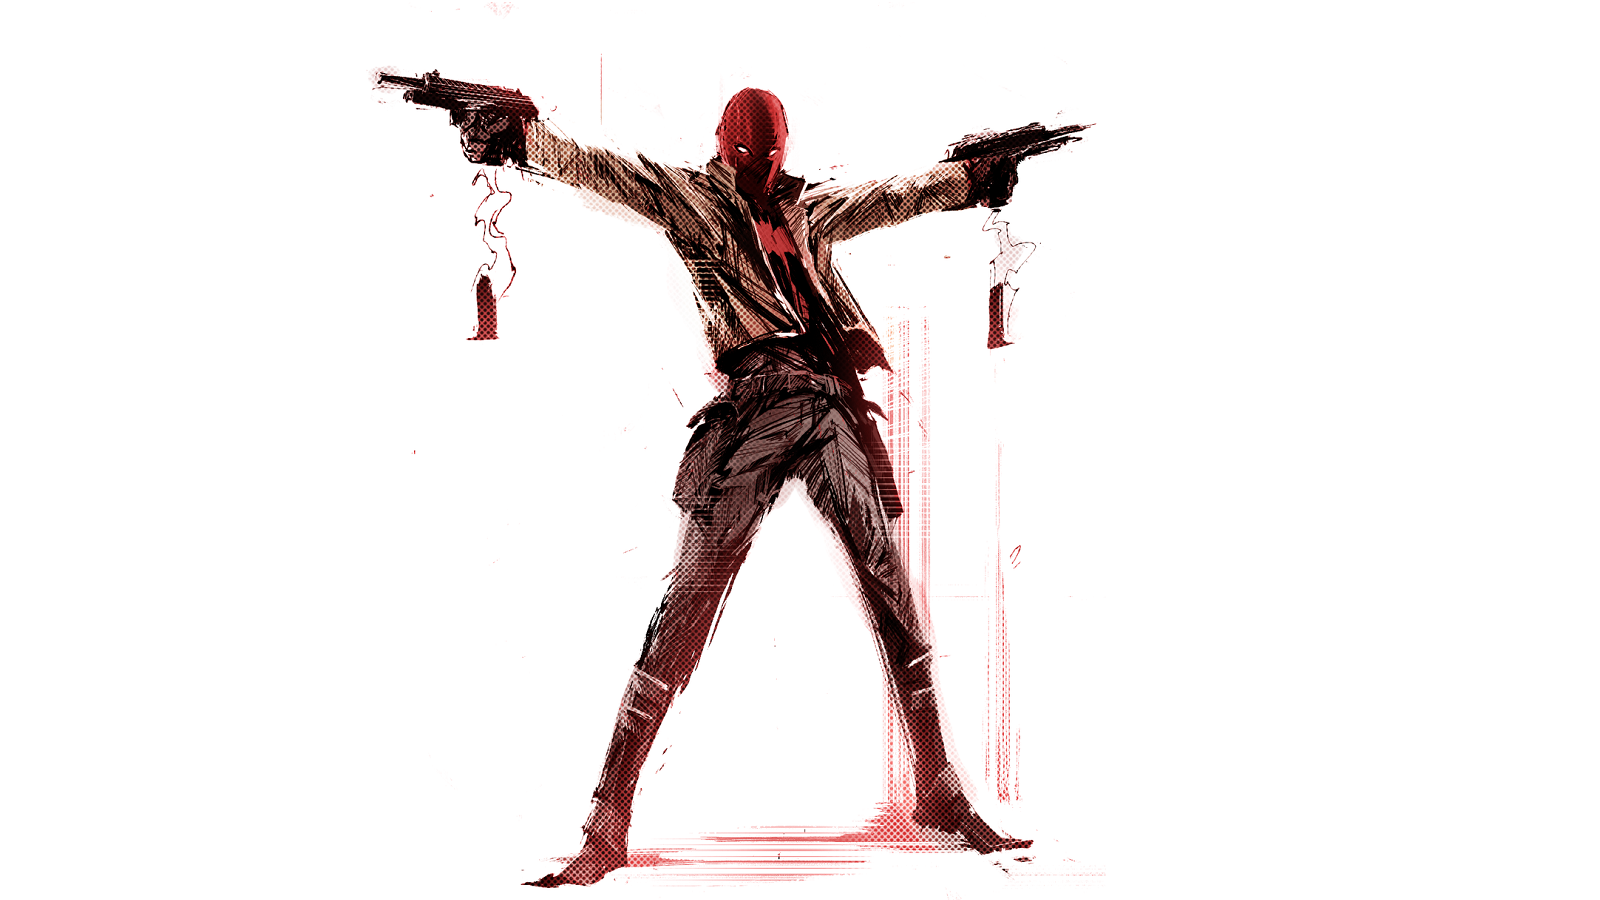 Red Hood Wallpaper 1920x1080: Red Hood Wallpaper And Background Image